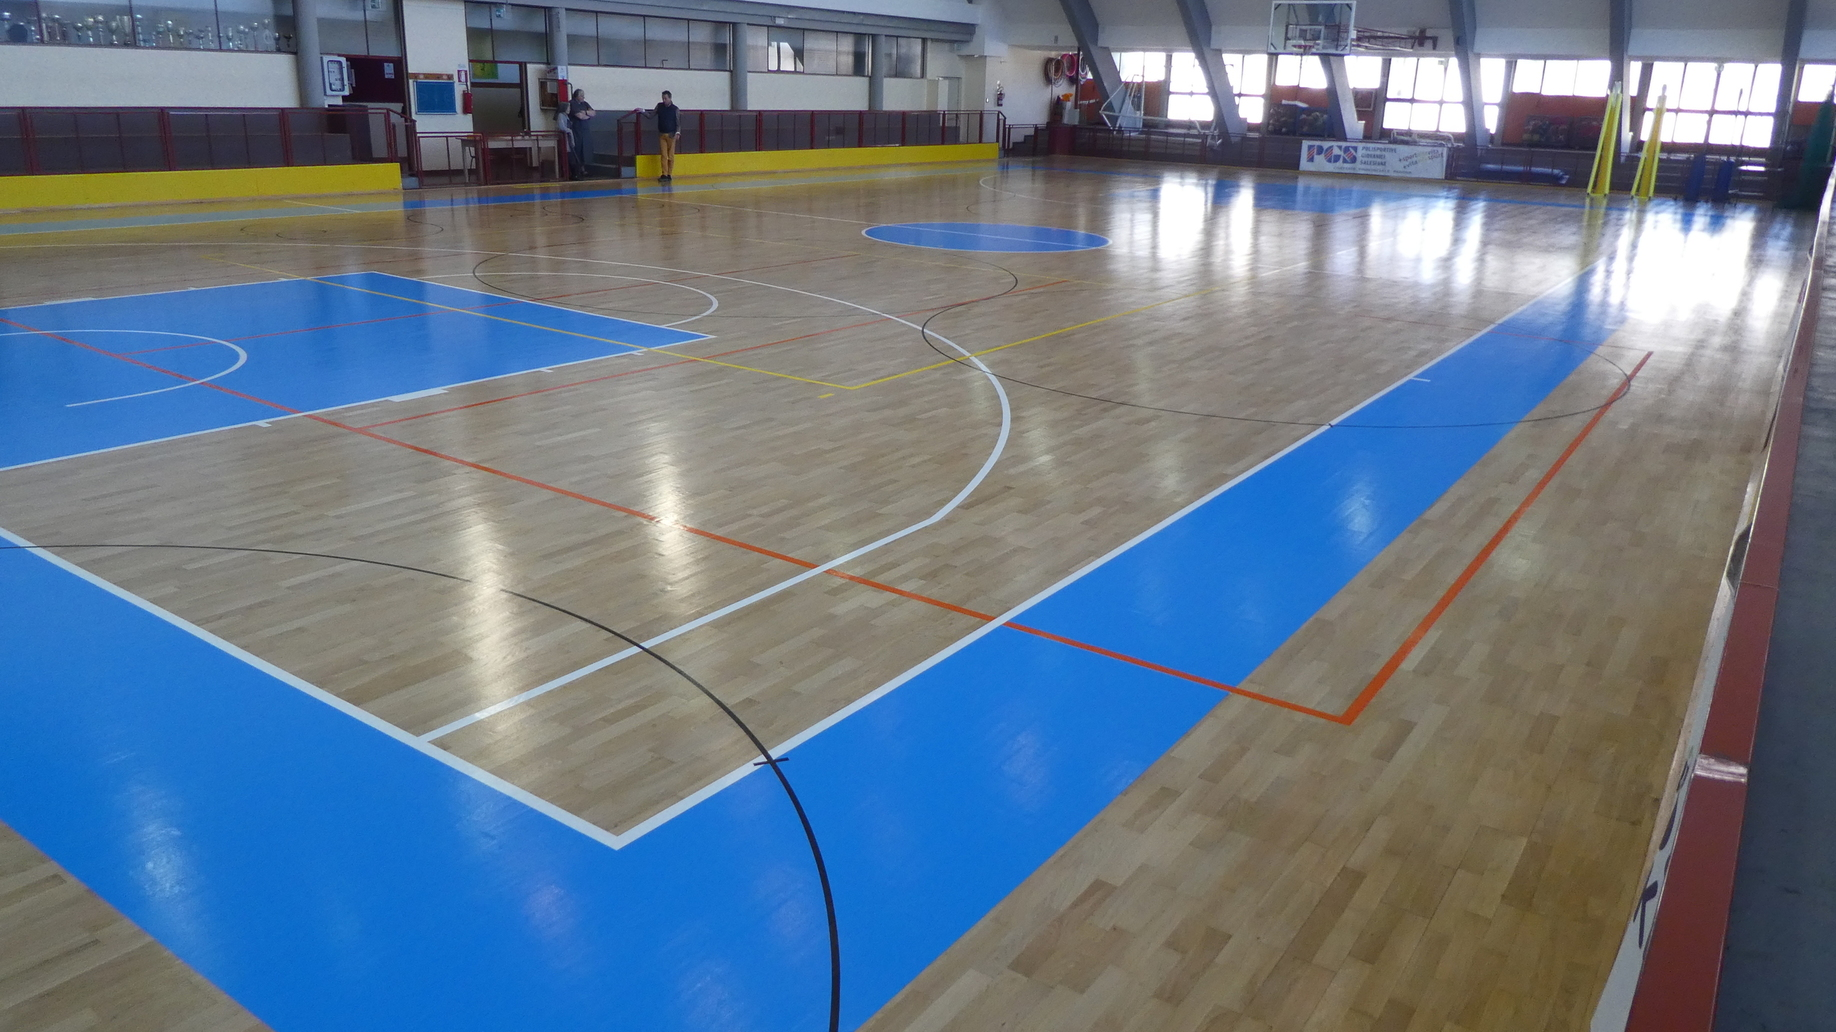 The flooring is ready to host the various sports disciplines